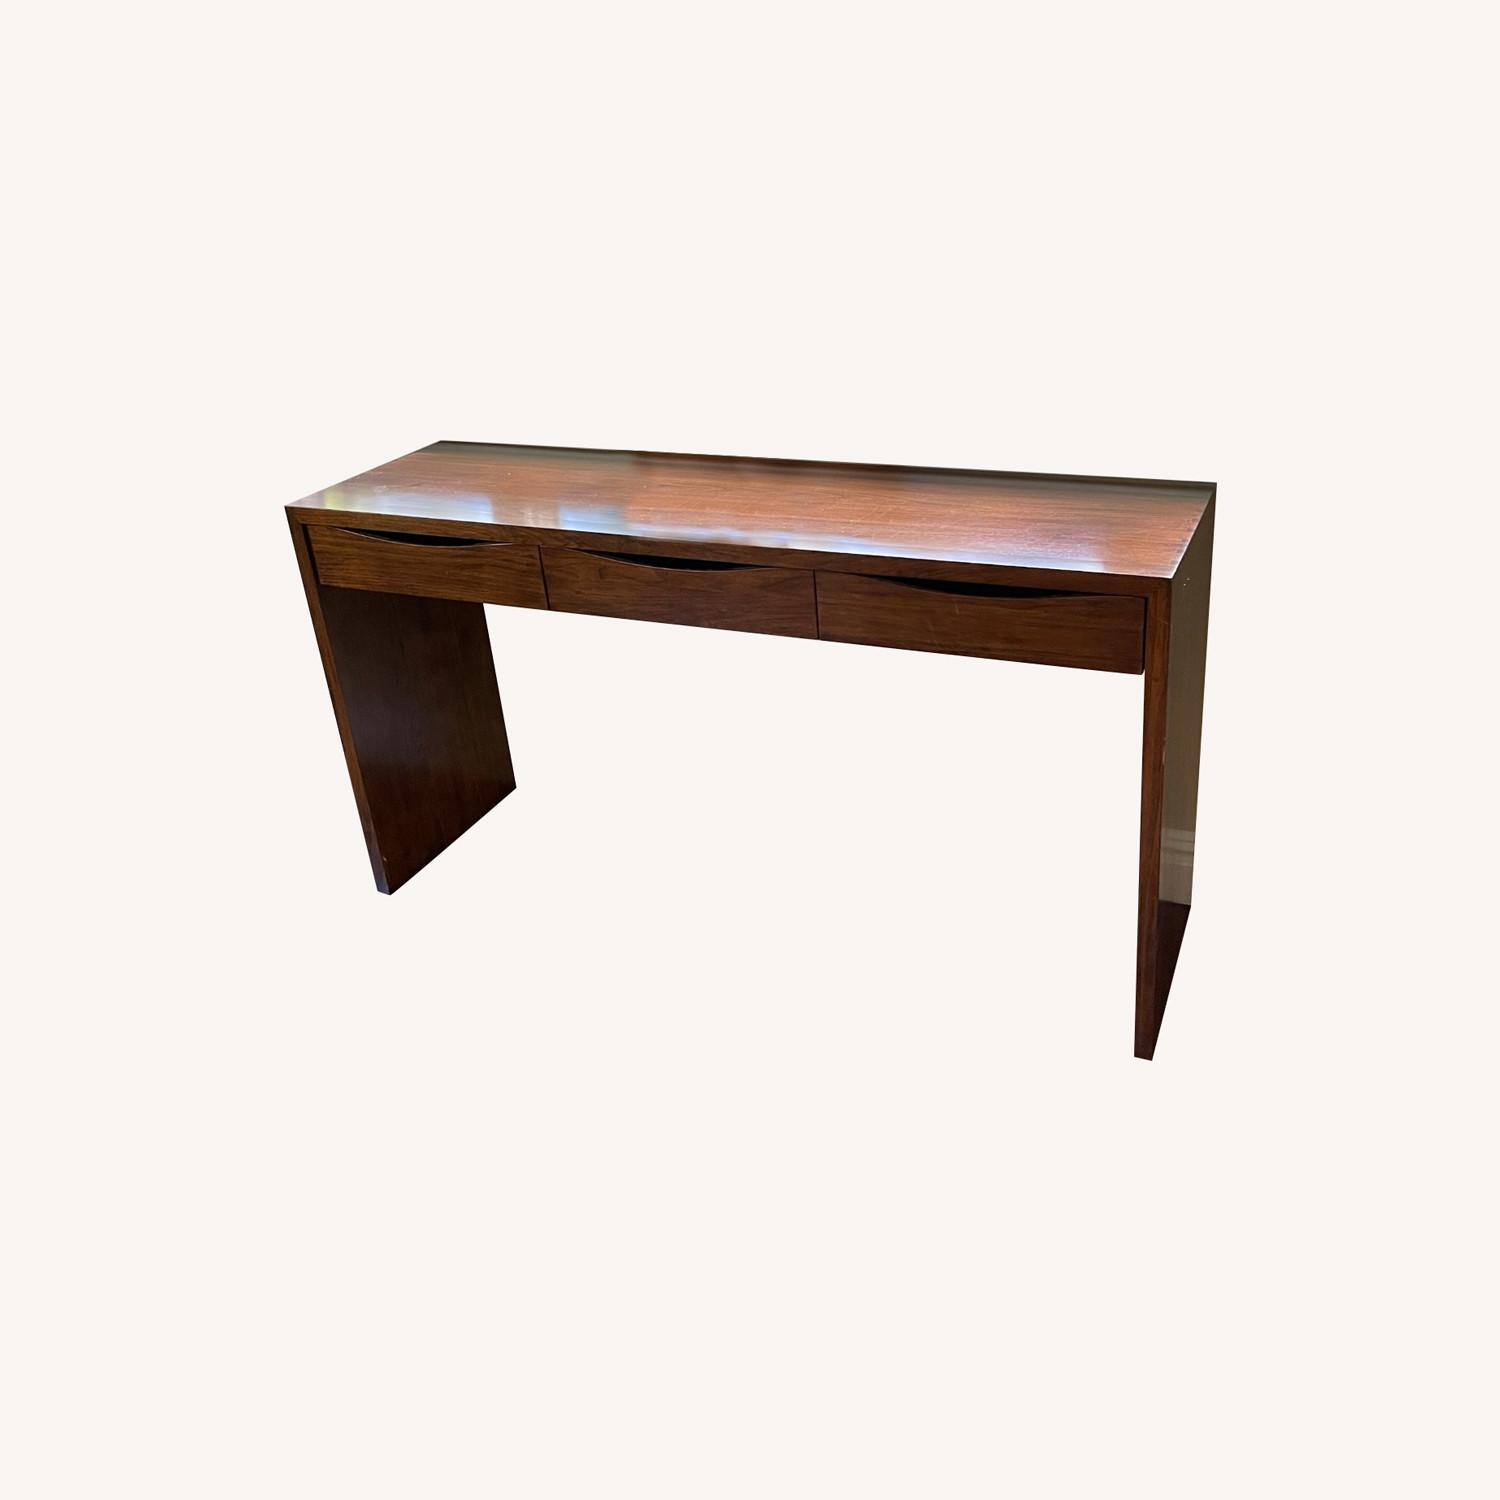 Crate & Barrel Luna Console Table in Solid Walnut - image-0